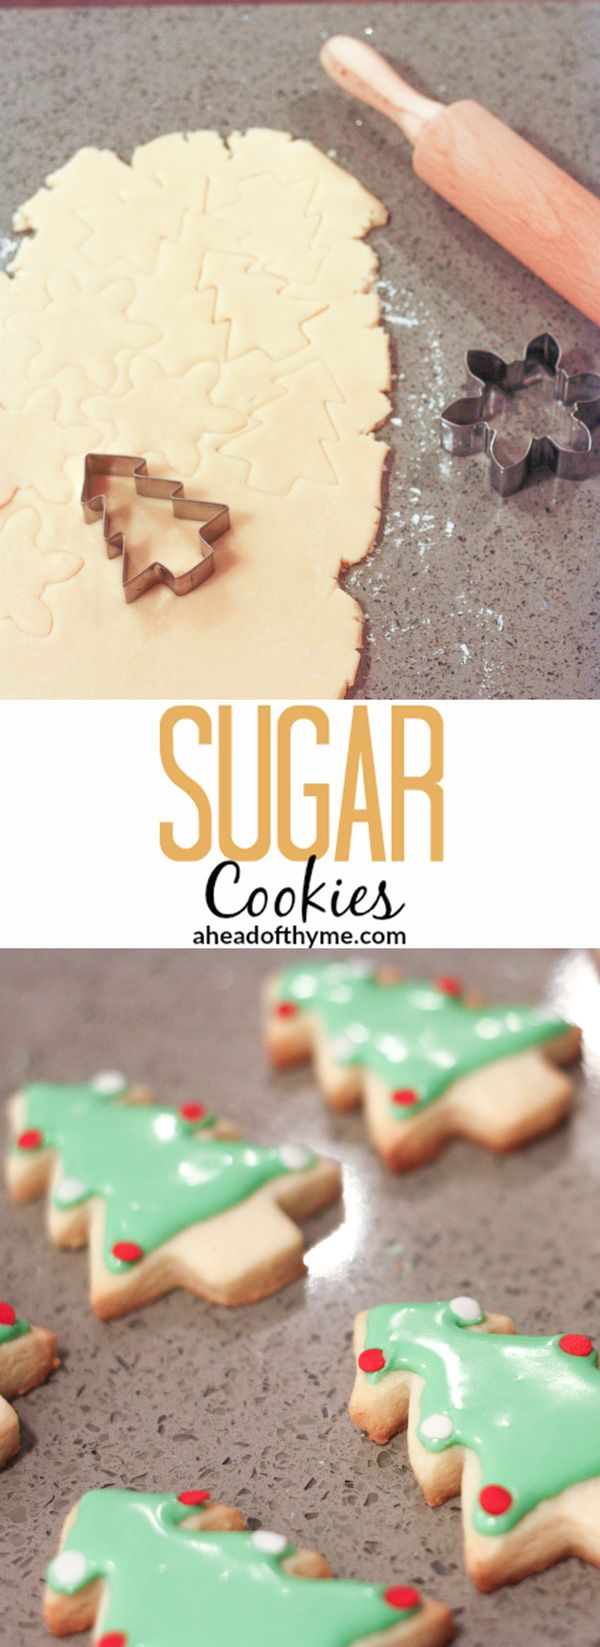 Amp occasions gt christmas alert occasions gt christmas decorations -  Healthy Guides Recipes Sugar Cookies It S That Time Of Year Again And One Of My Favourite Holiday Traditions Is Baking And Decorating Sugar Cookies